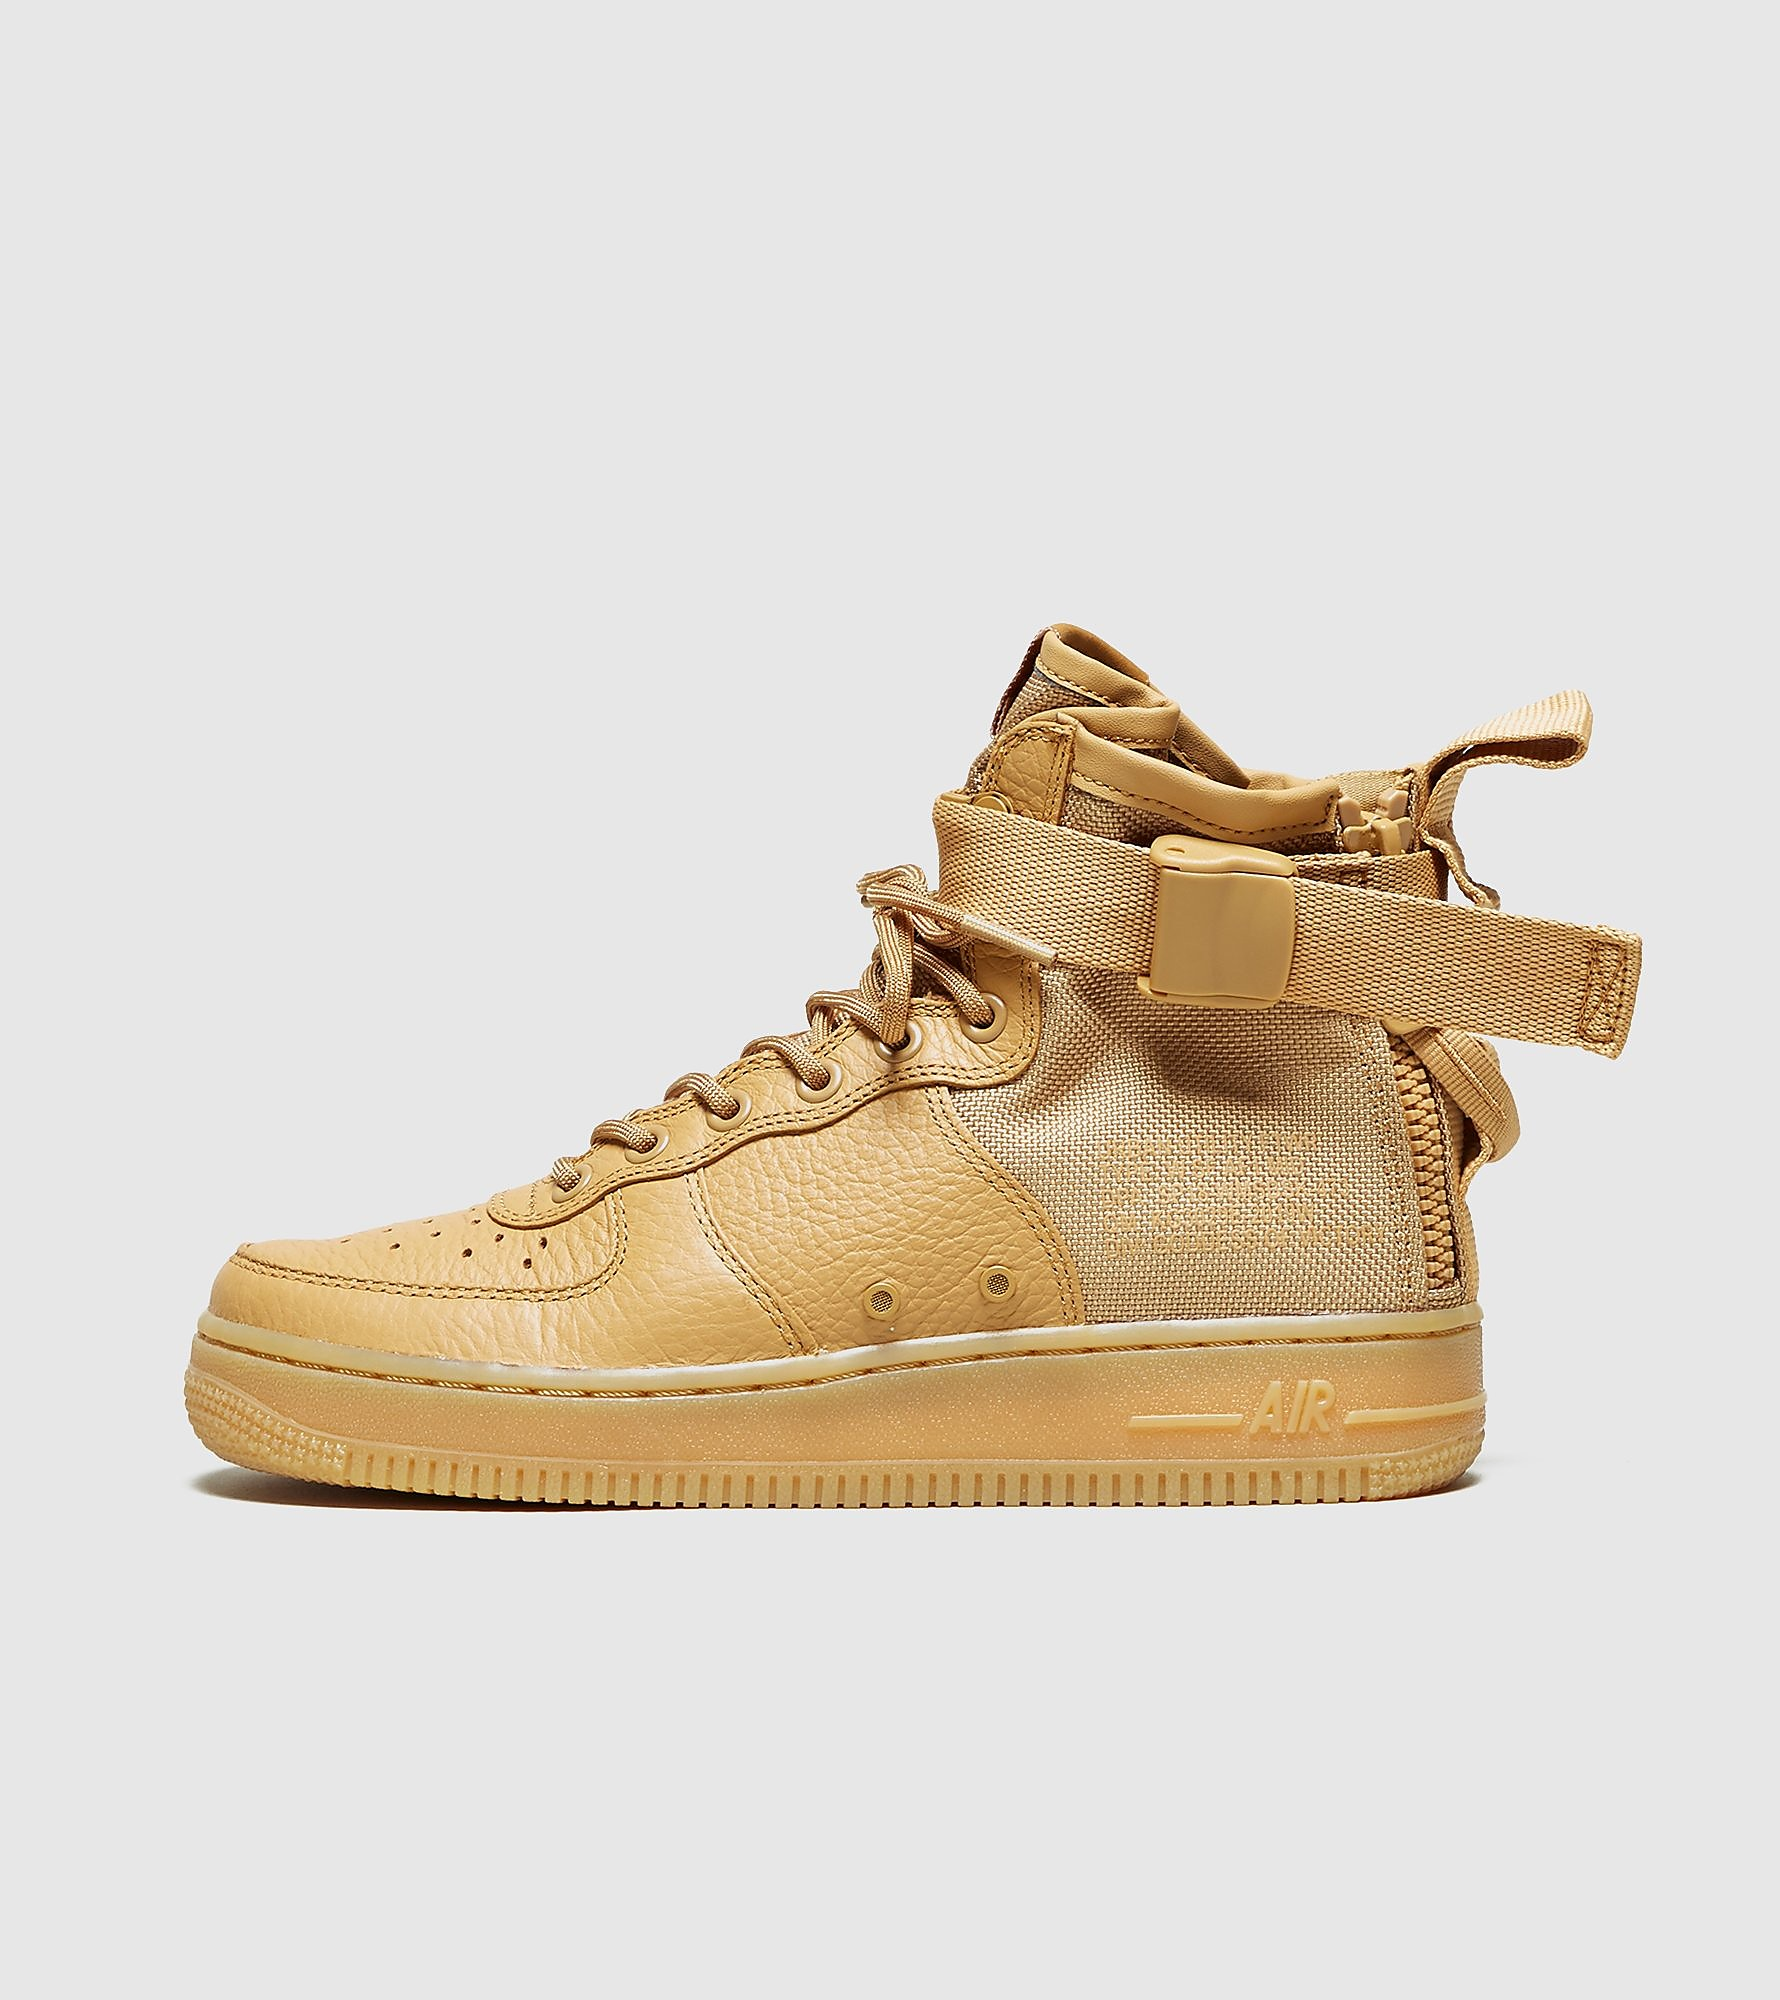 Nike SF Air Force 1 Mid Frauen